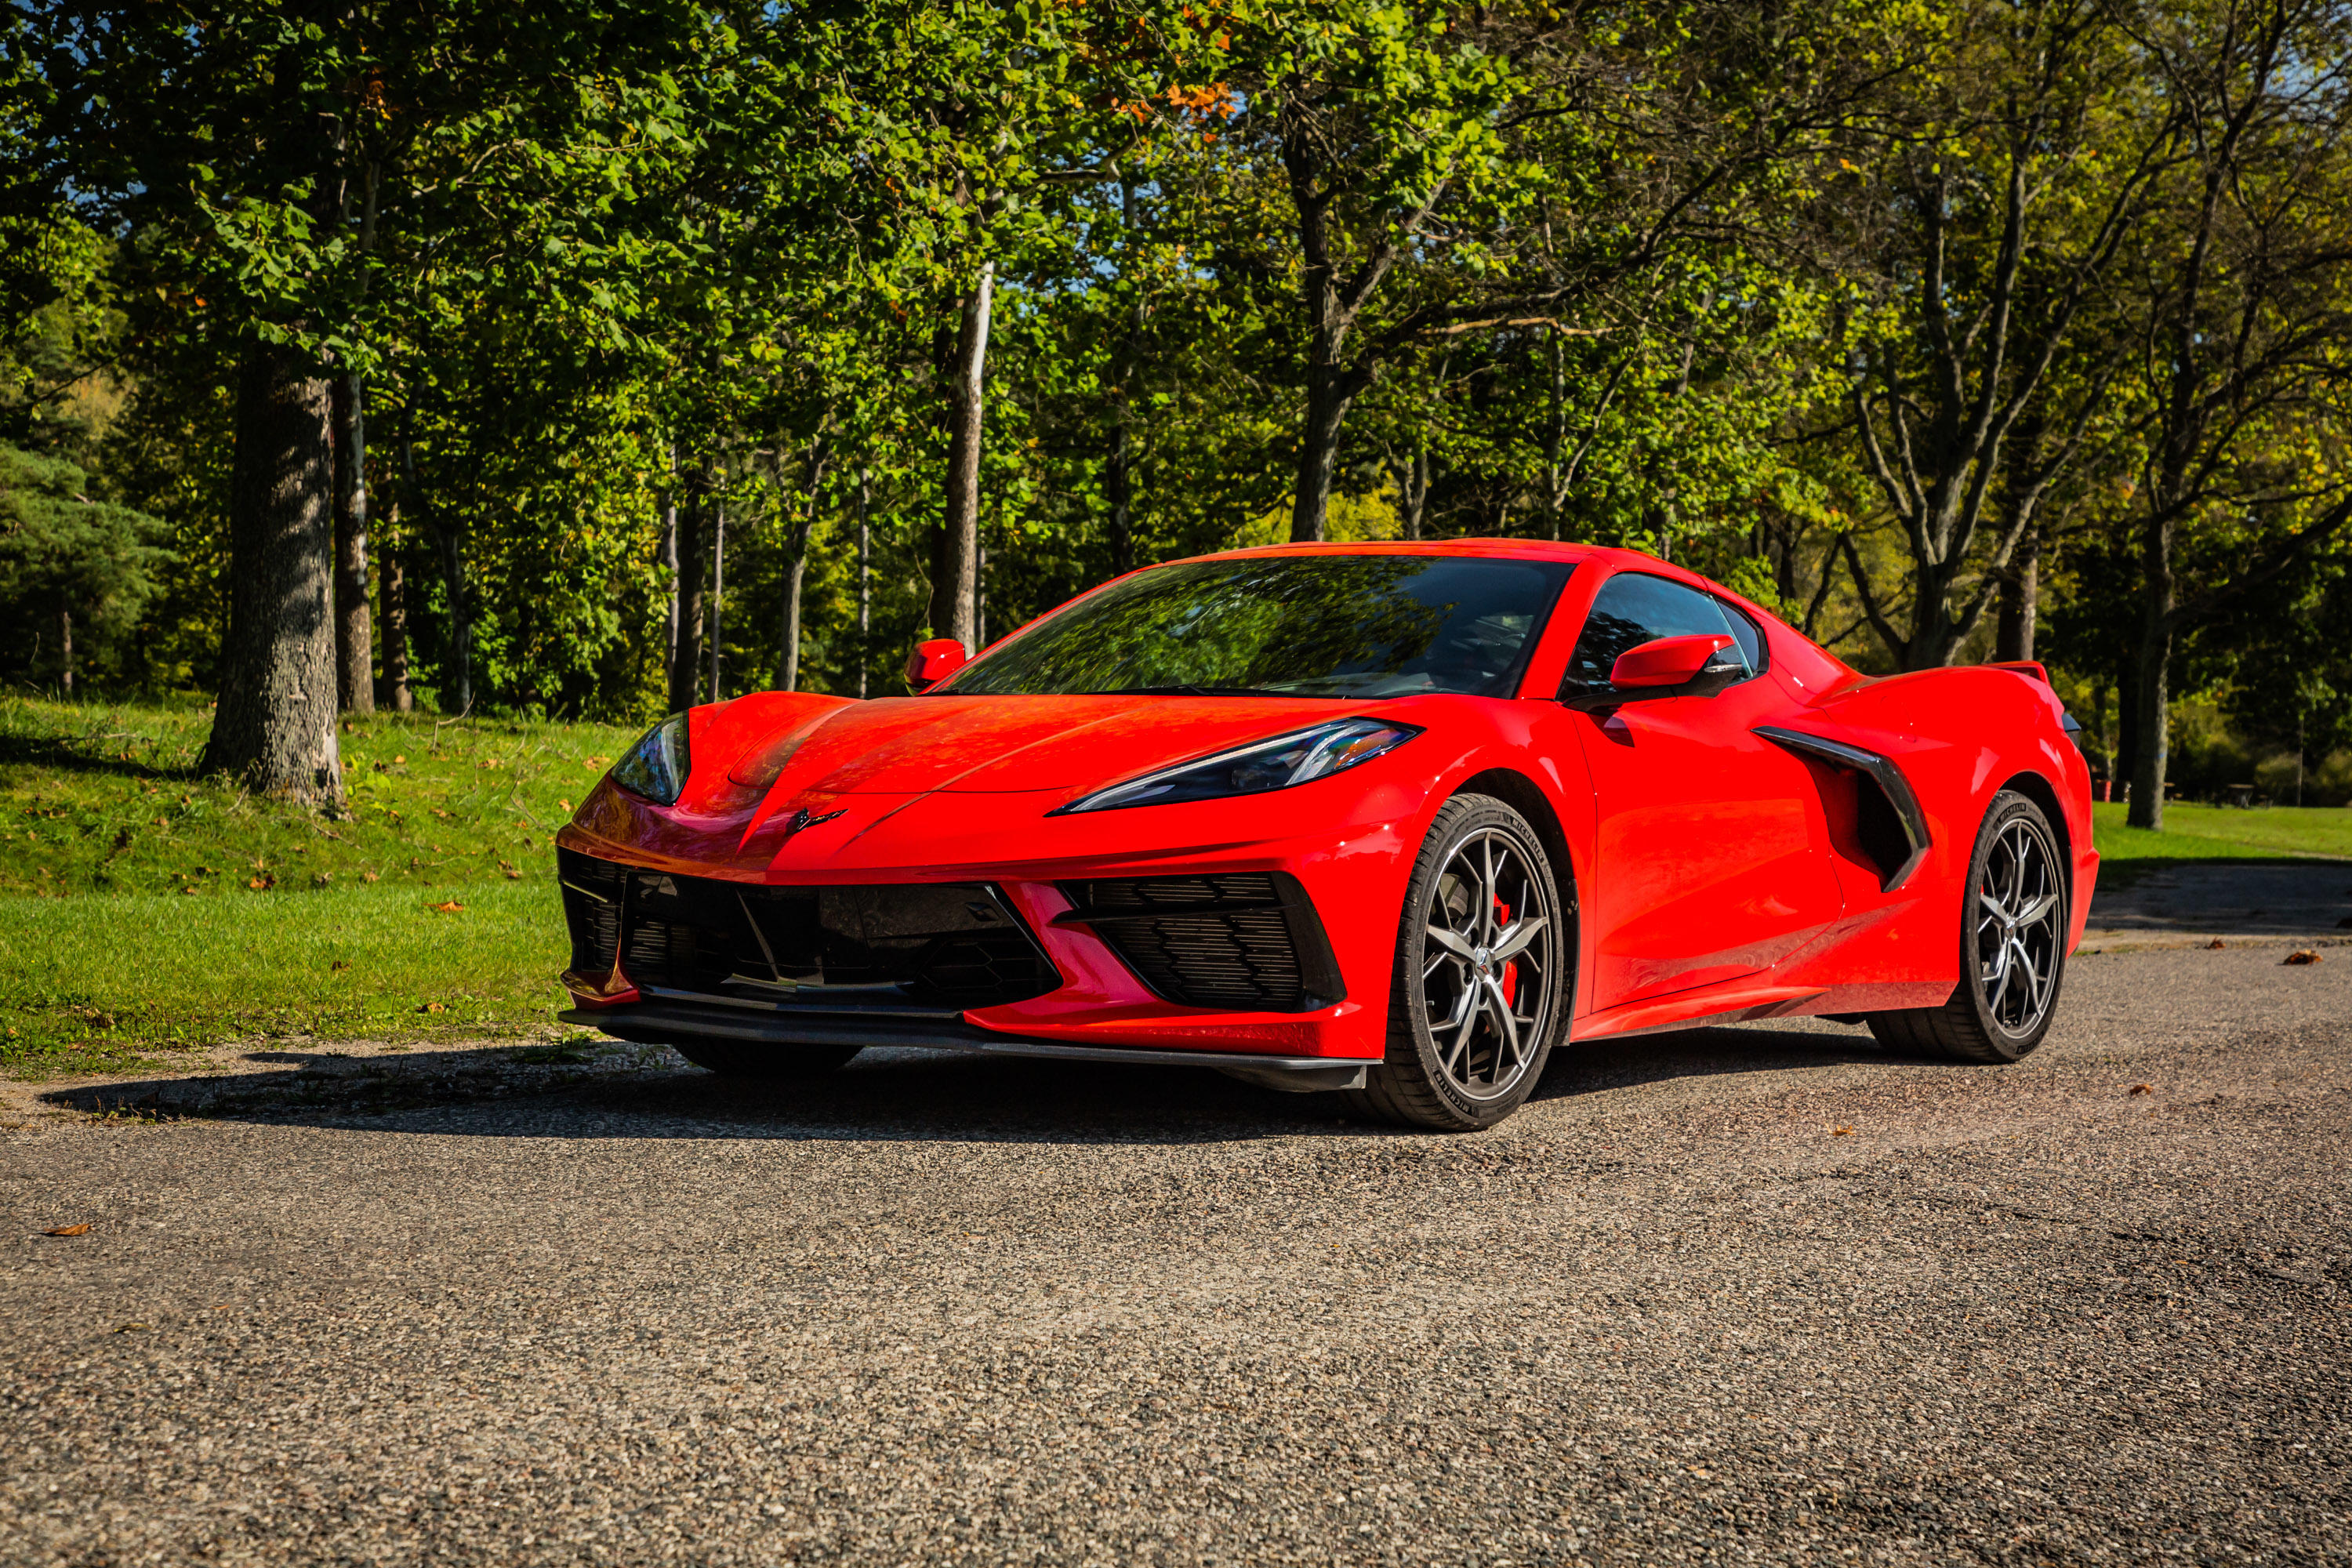 2020-chevy-corvette-c8-1